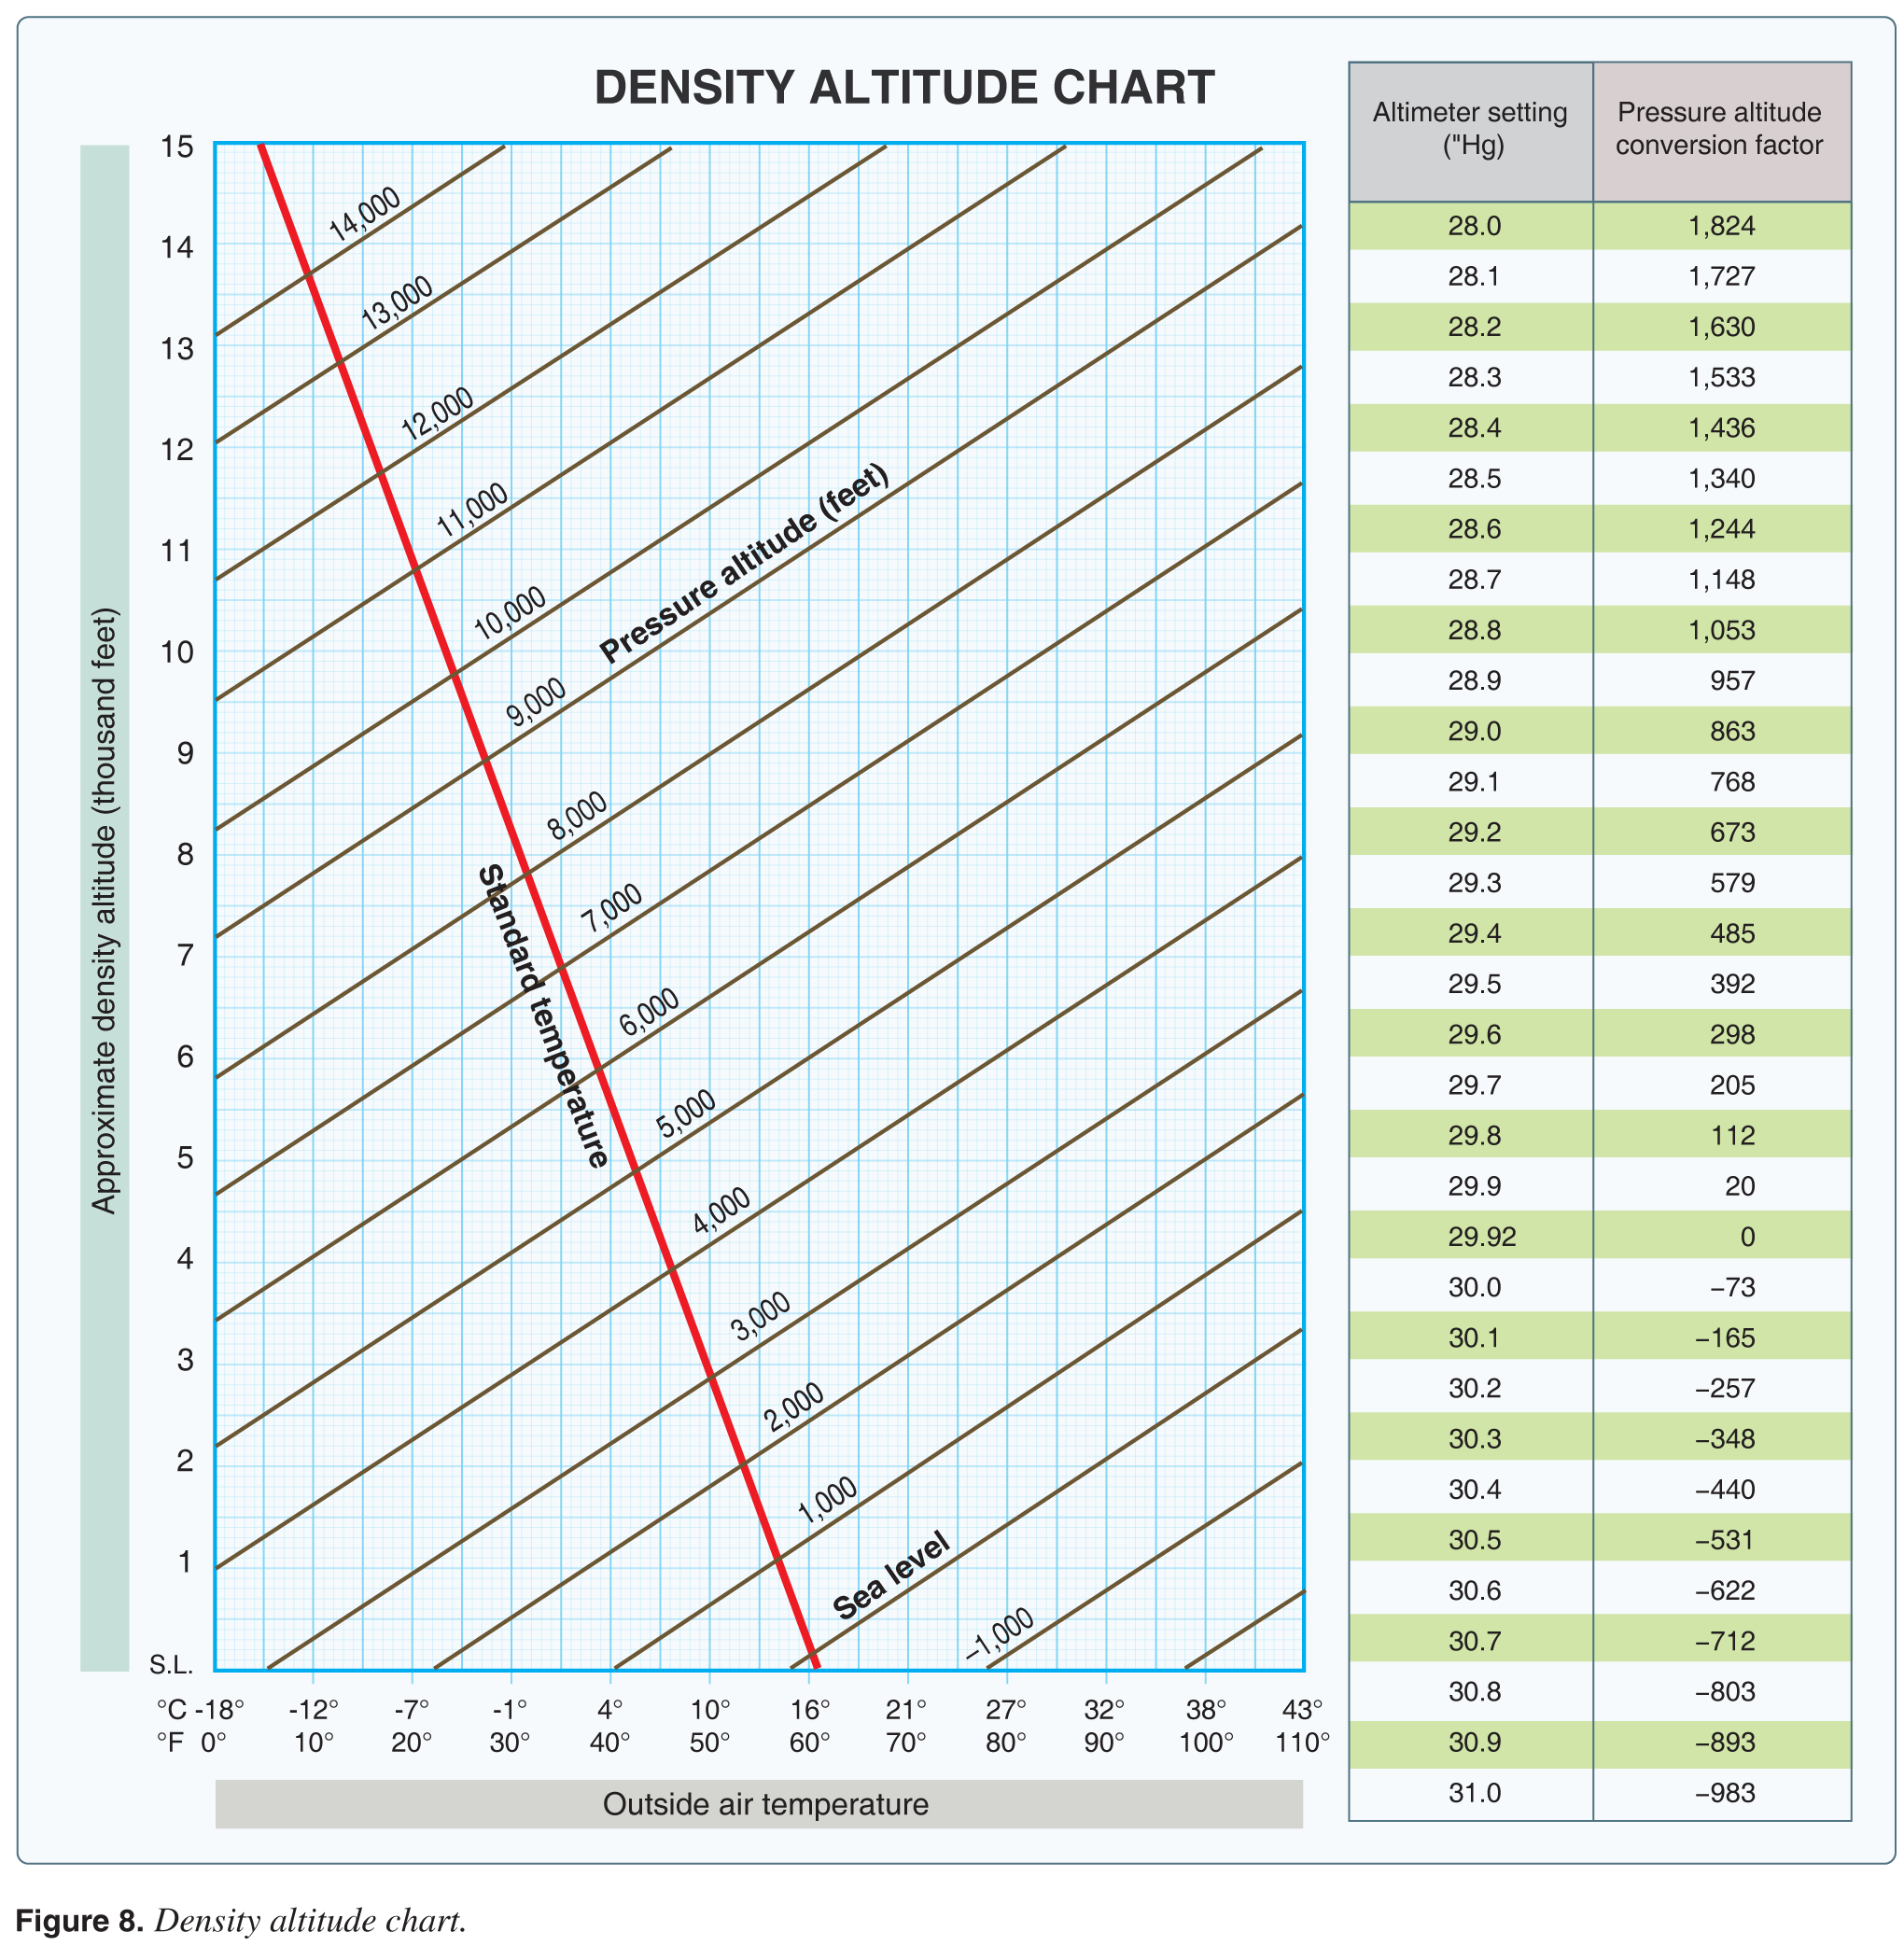 Atmospheric pressure altitude chart pictures to pin on - Atmospheric pressure conversion table ...